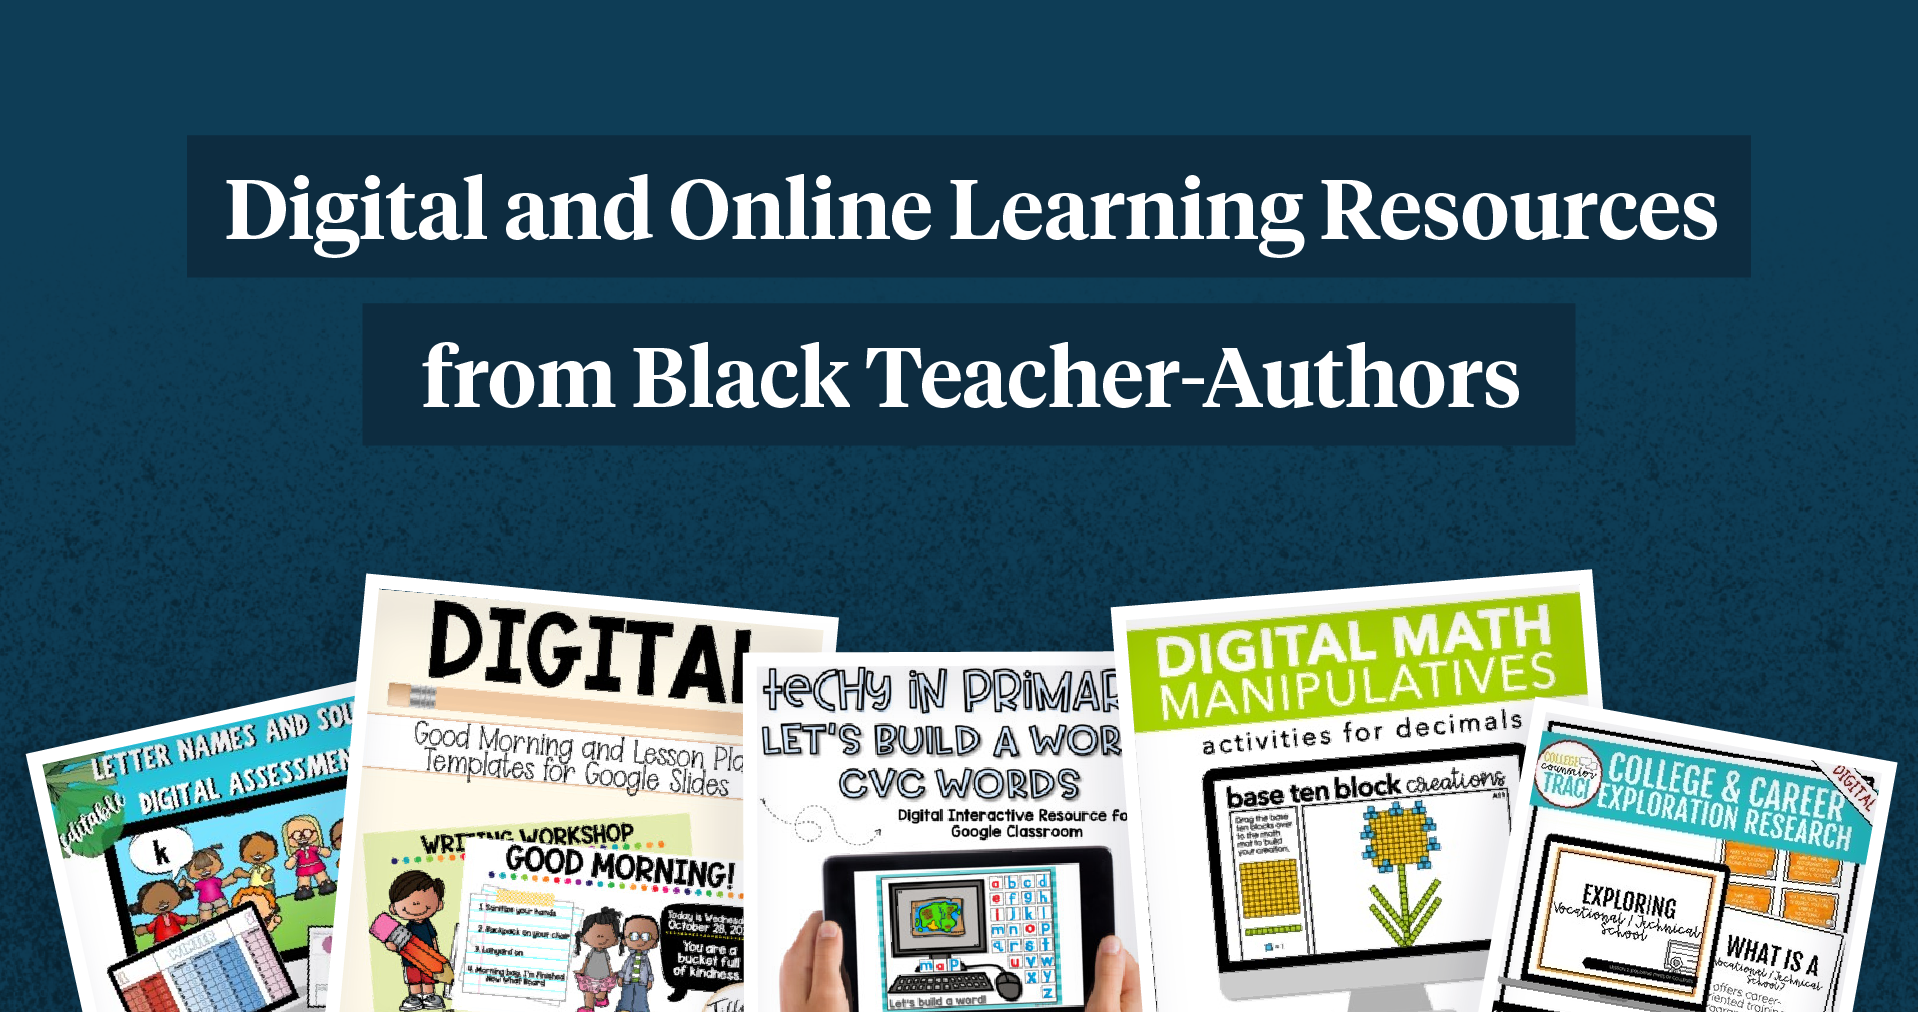 Digital and Online Learning Resources from Black Teacher-Authors